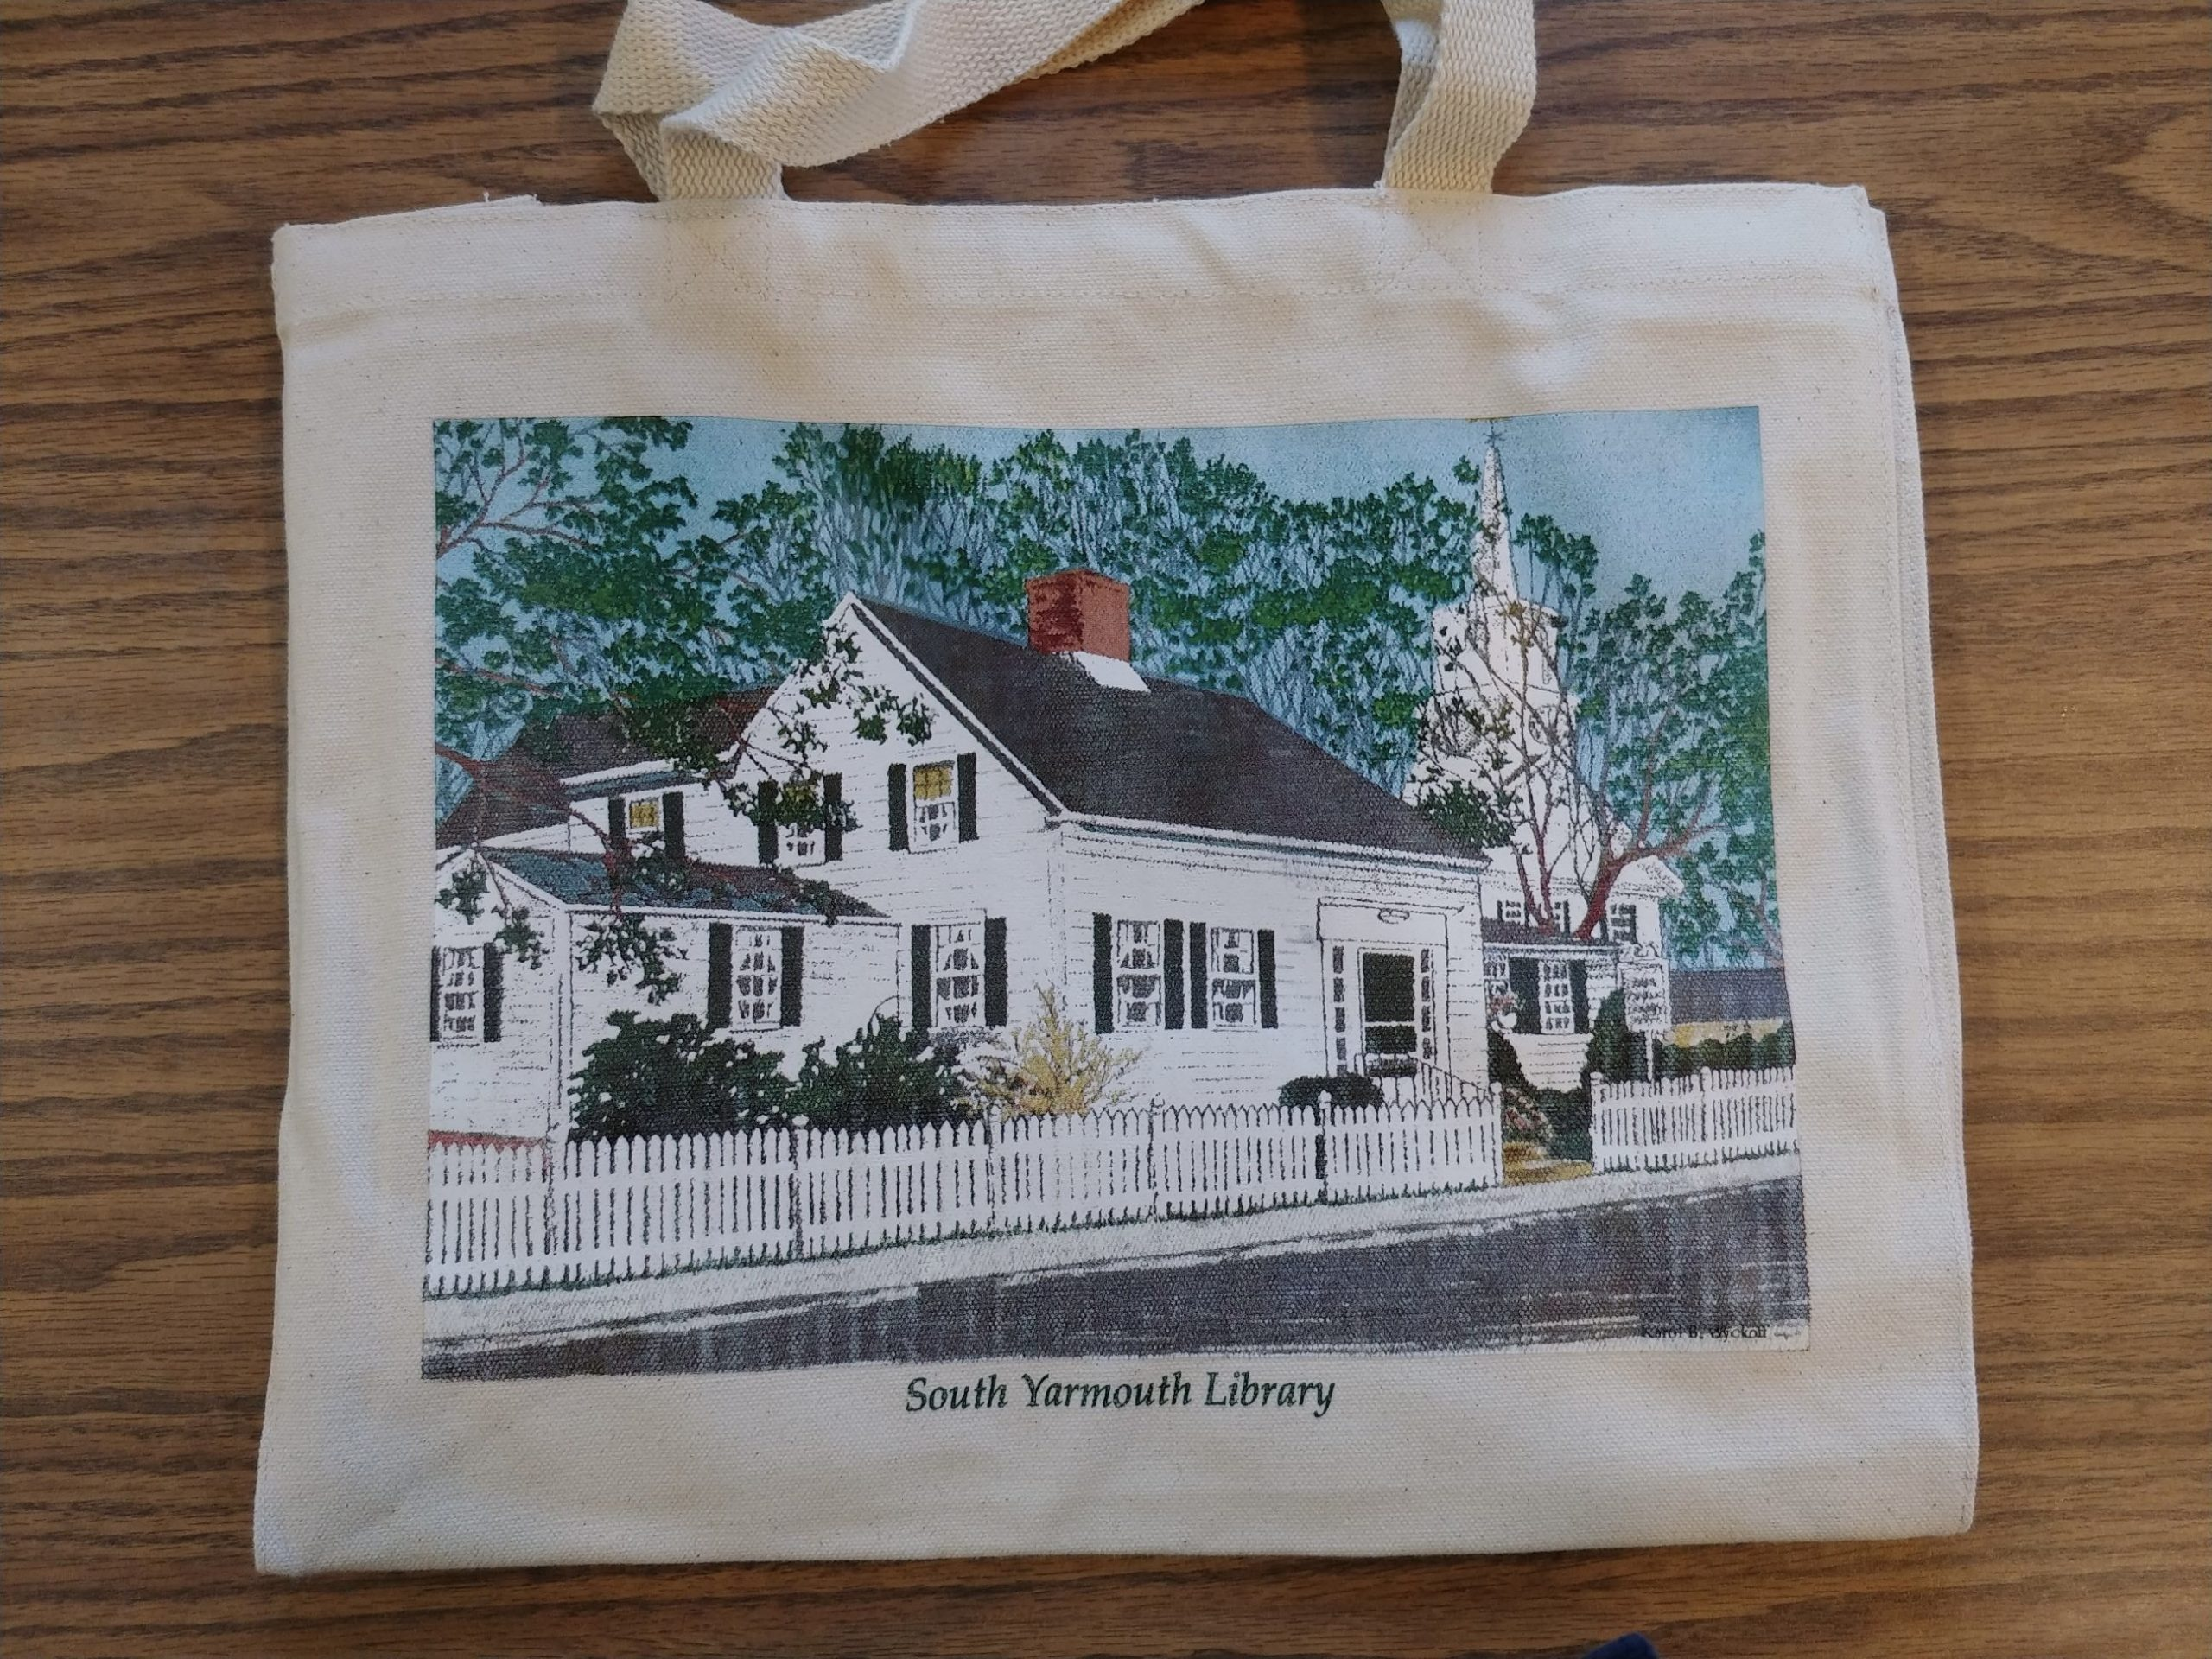 For a $15.00 contribution to the South Yarmouth Library Association, you can enjoy your own sturdy cotton book bag with a lovely illustration of the South Yarmouth Library by local artist Karol Wyckoff. Makes a great gift! Ask about it at the Library.